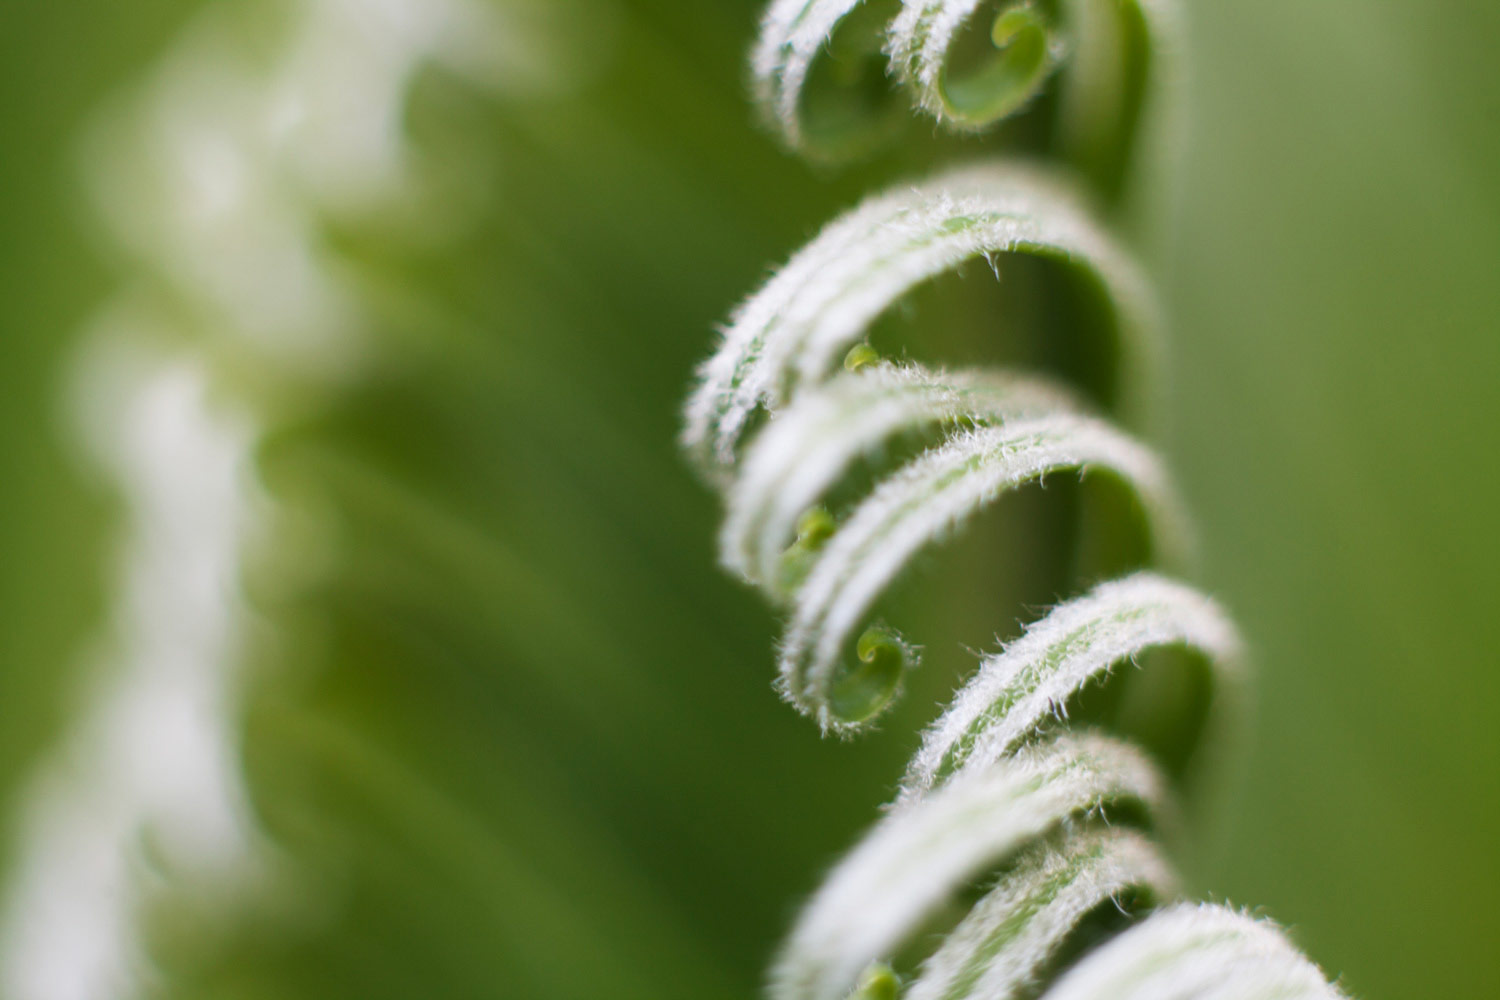 https://i2.wp.com/digital-photography-school.com/wp-content/uploads/2019/04/fern_curl_green.jpg?resize=1500%2C1000&ssl=1